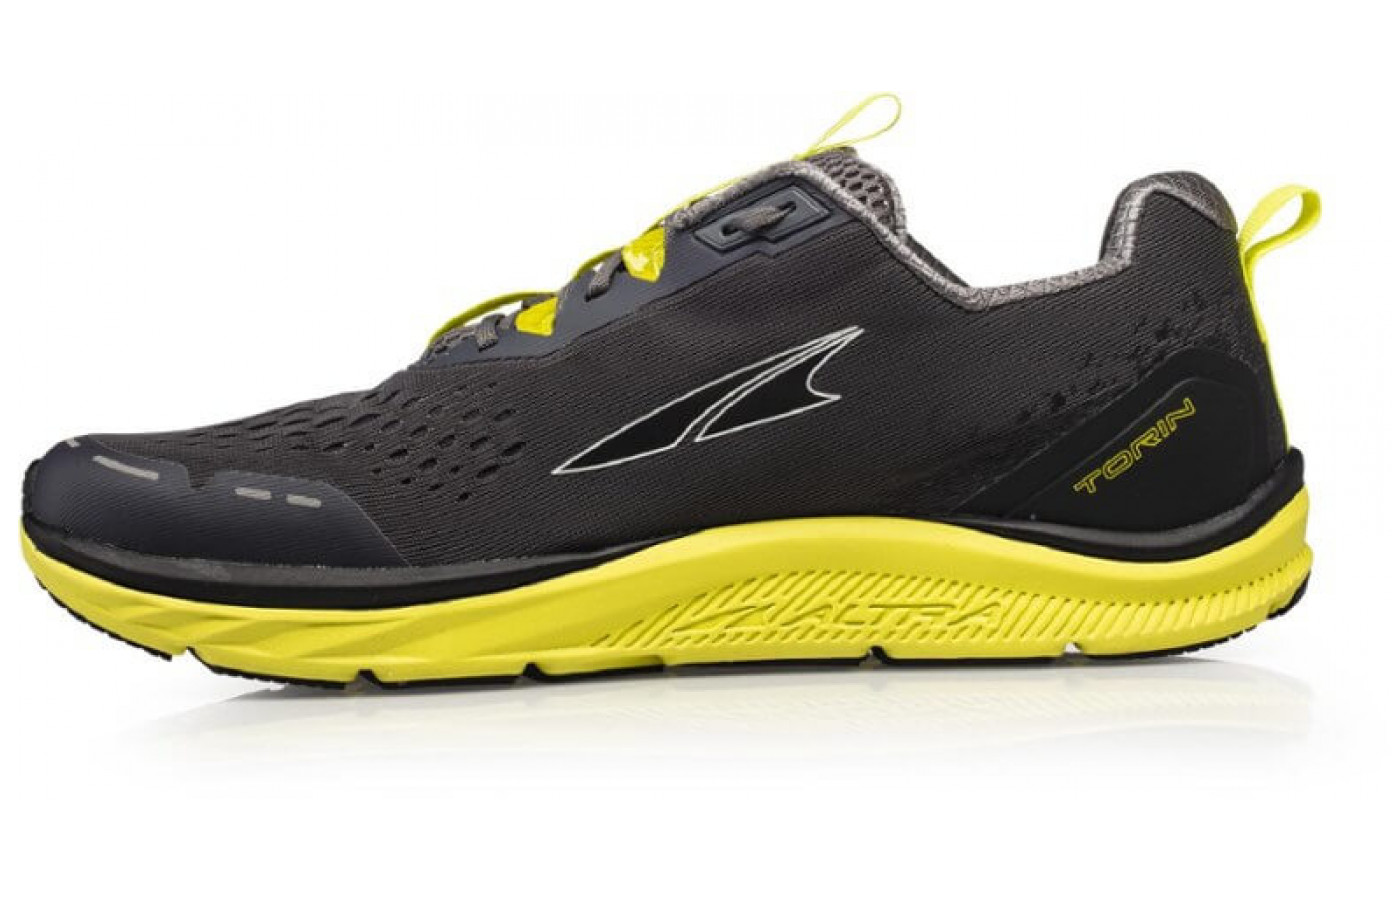 The Torin 4 has a zero drop platform like all other Altra models